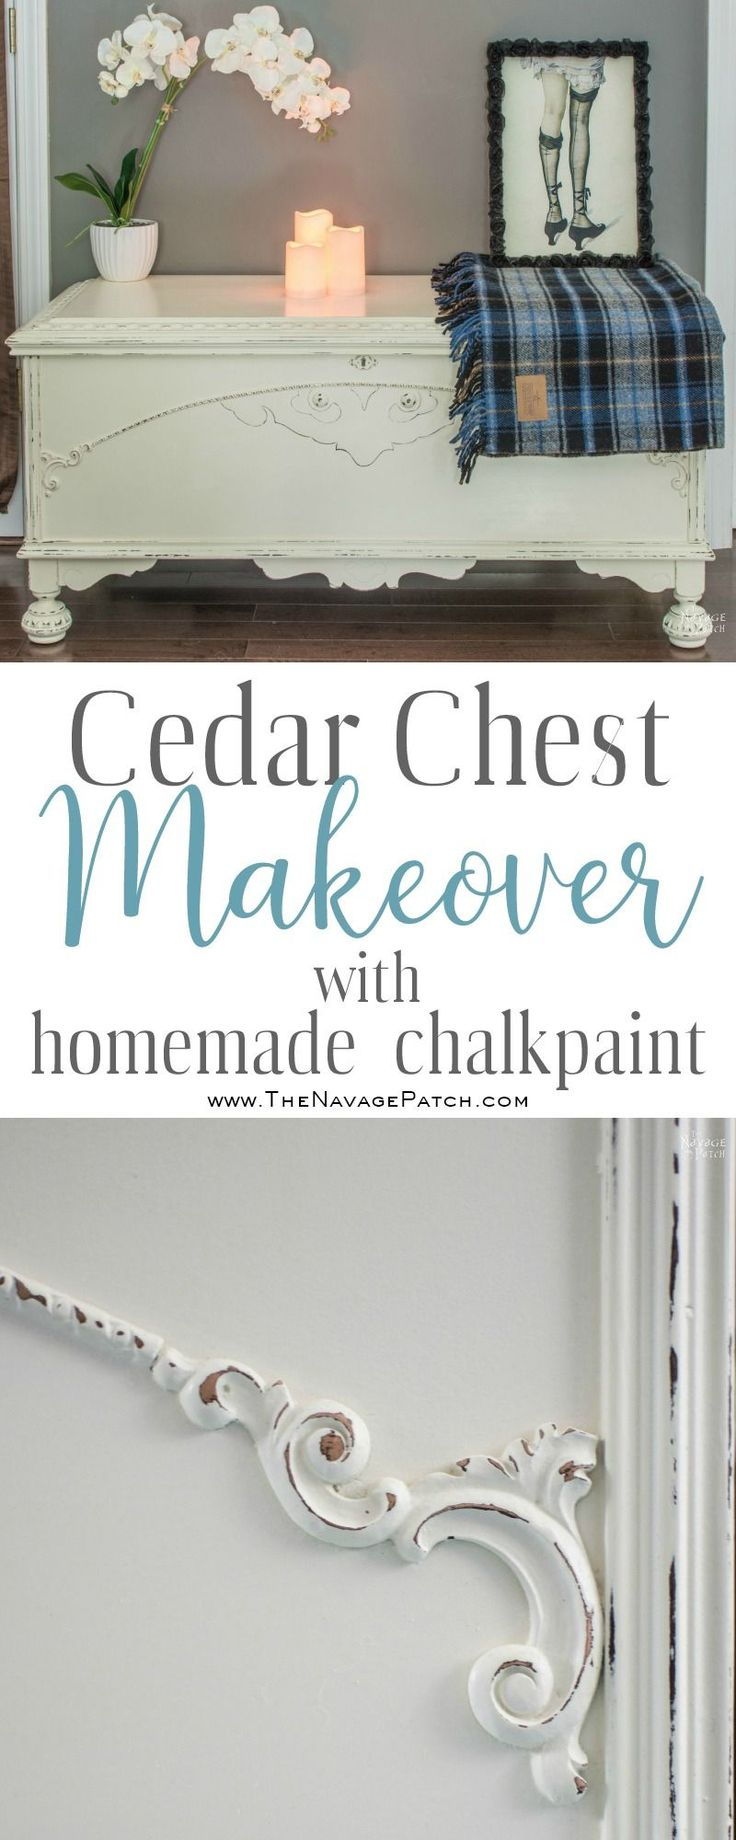 Cedar Chest Makeover | DIY furniture makeover with homemade chalk paint |  How to cover wood stains when painting with chalk paint | Homemade chalk  paint ...